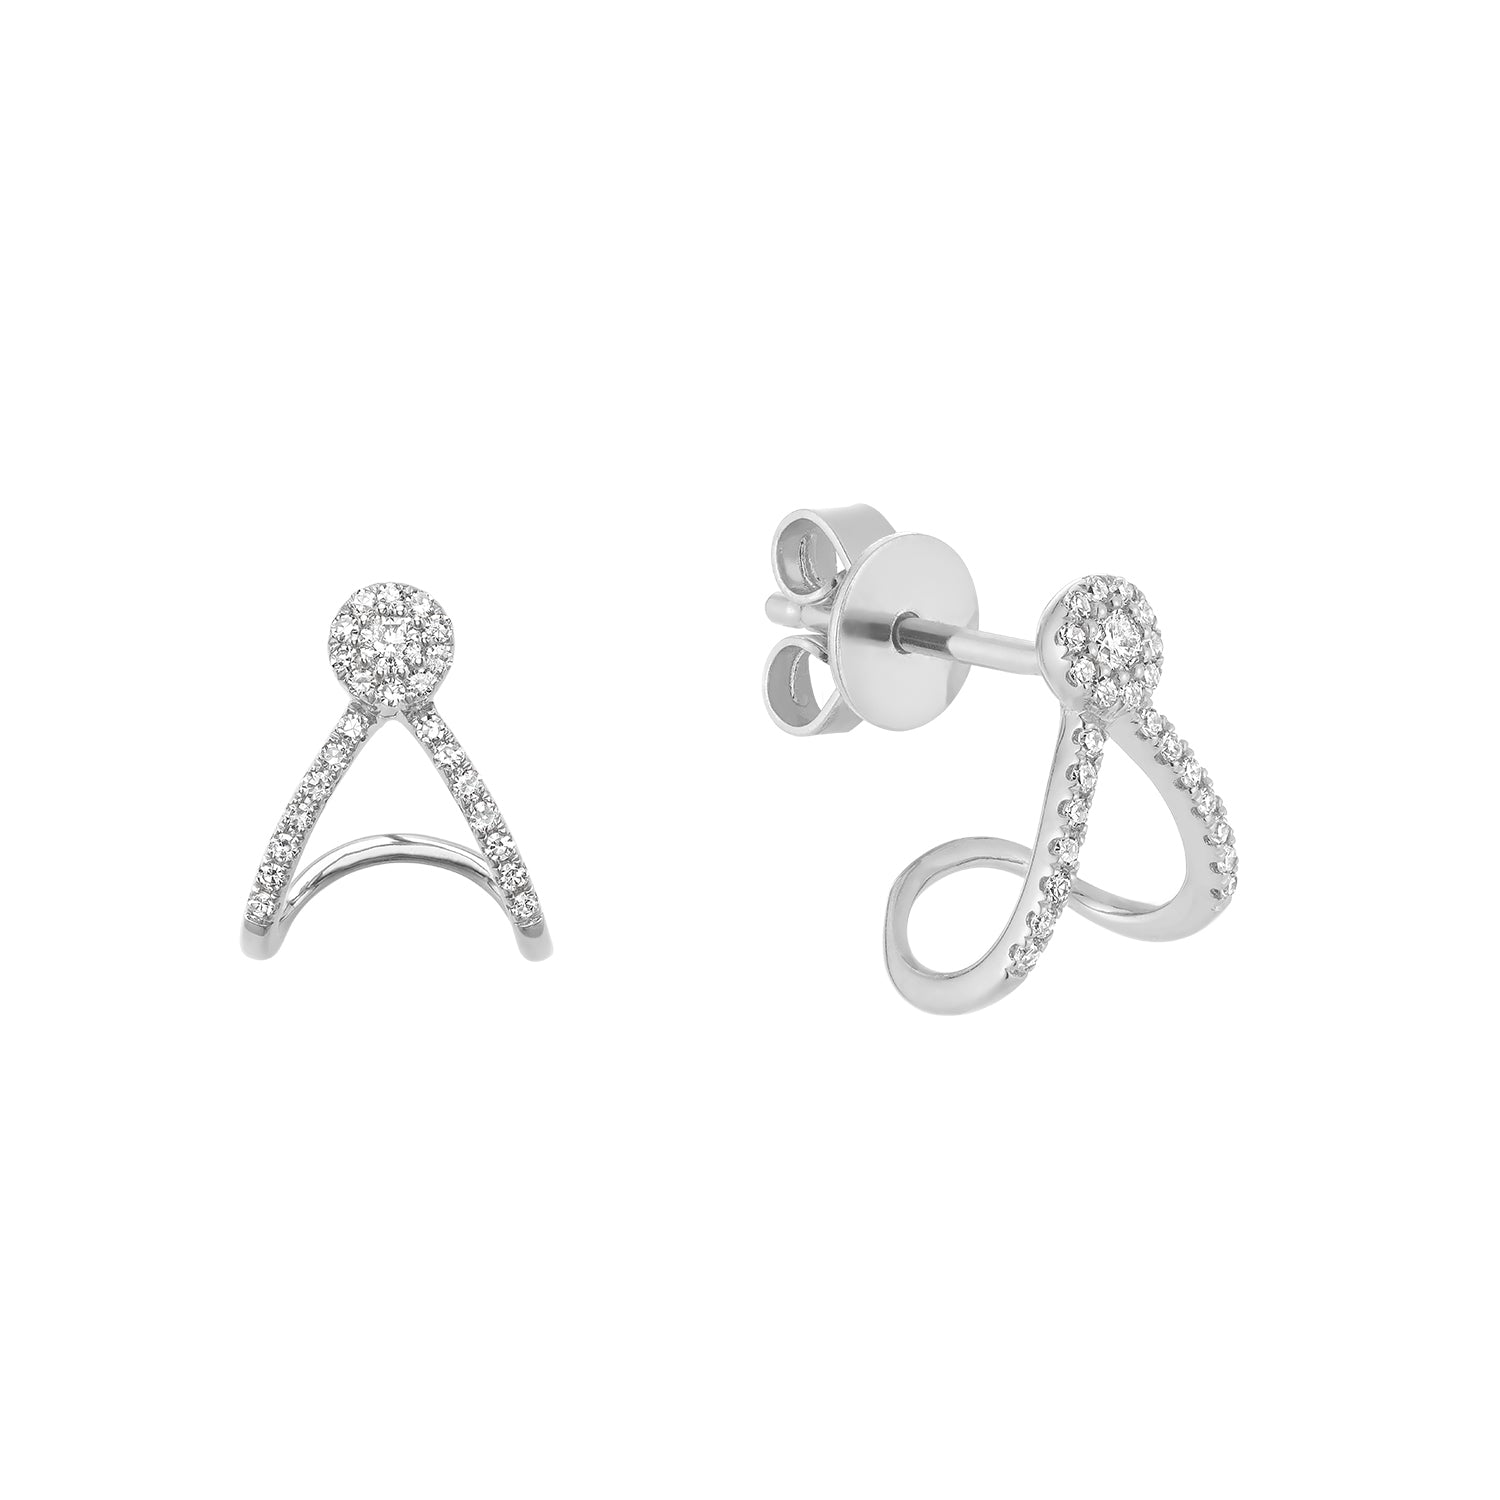 Hemsleys Collection 14K Diamond Double Wrap Mini Huggy Hoop Earrings